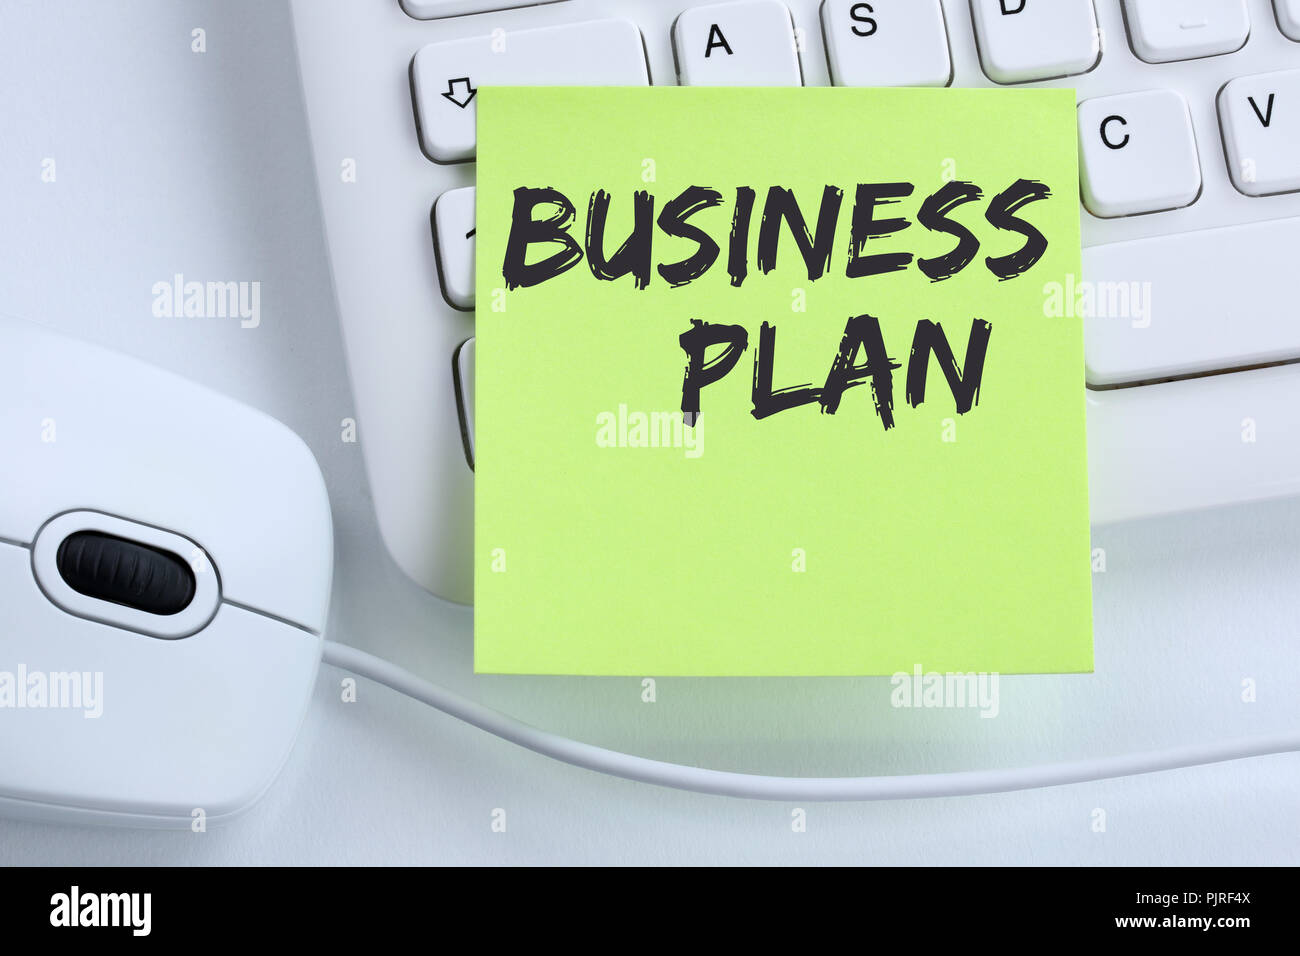 Business plan analysis strategy success concept company mouse computer keyboard - Stock Image